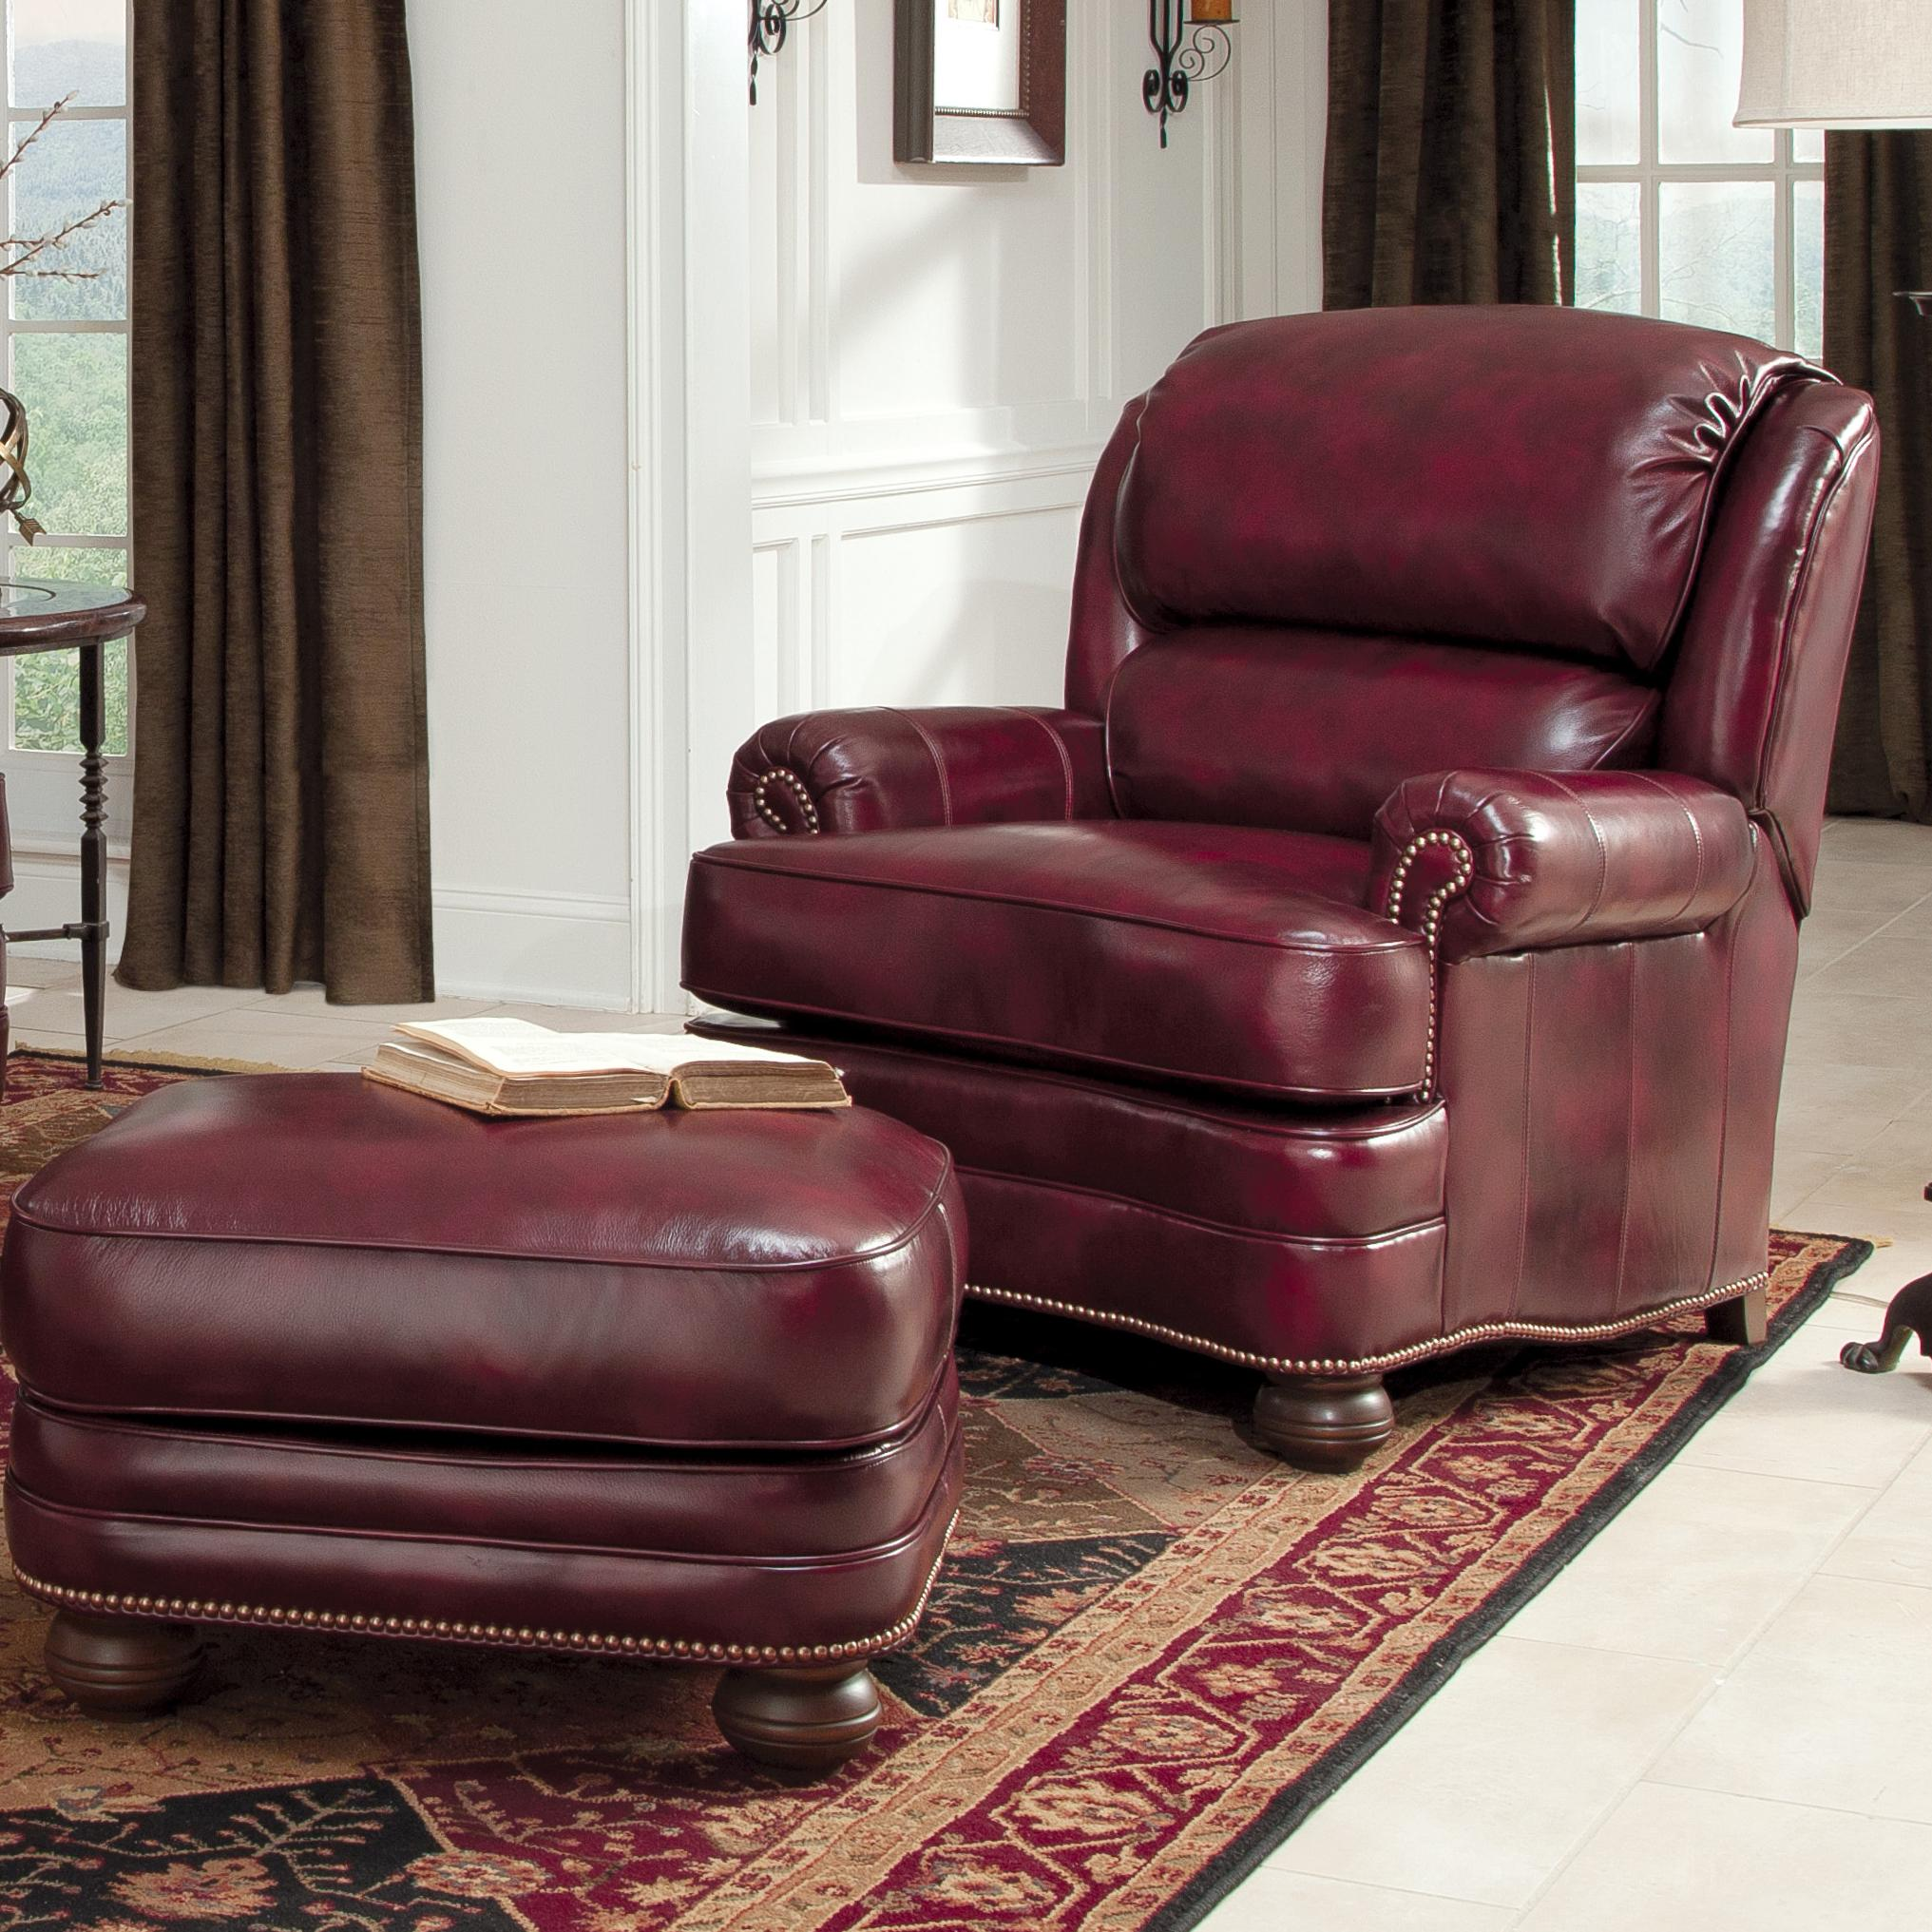 311 Upholstered Chair and Ottoman by Smith Brothers at Mueller Furniture